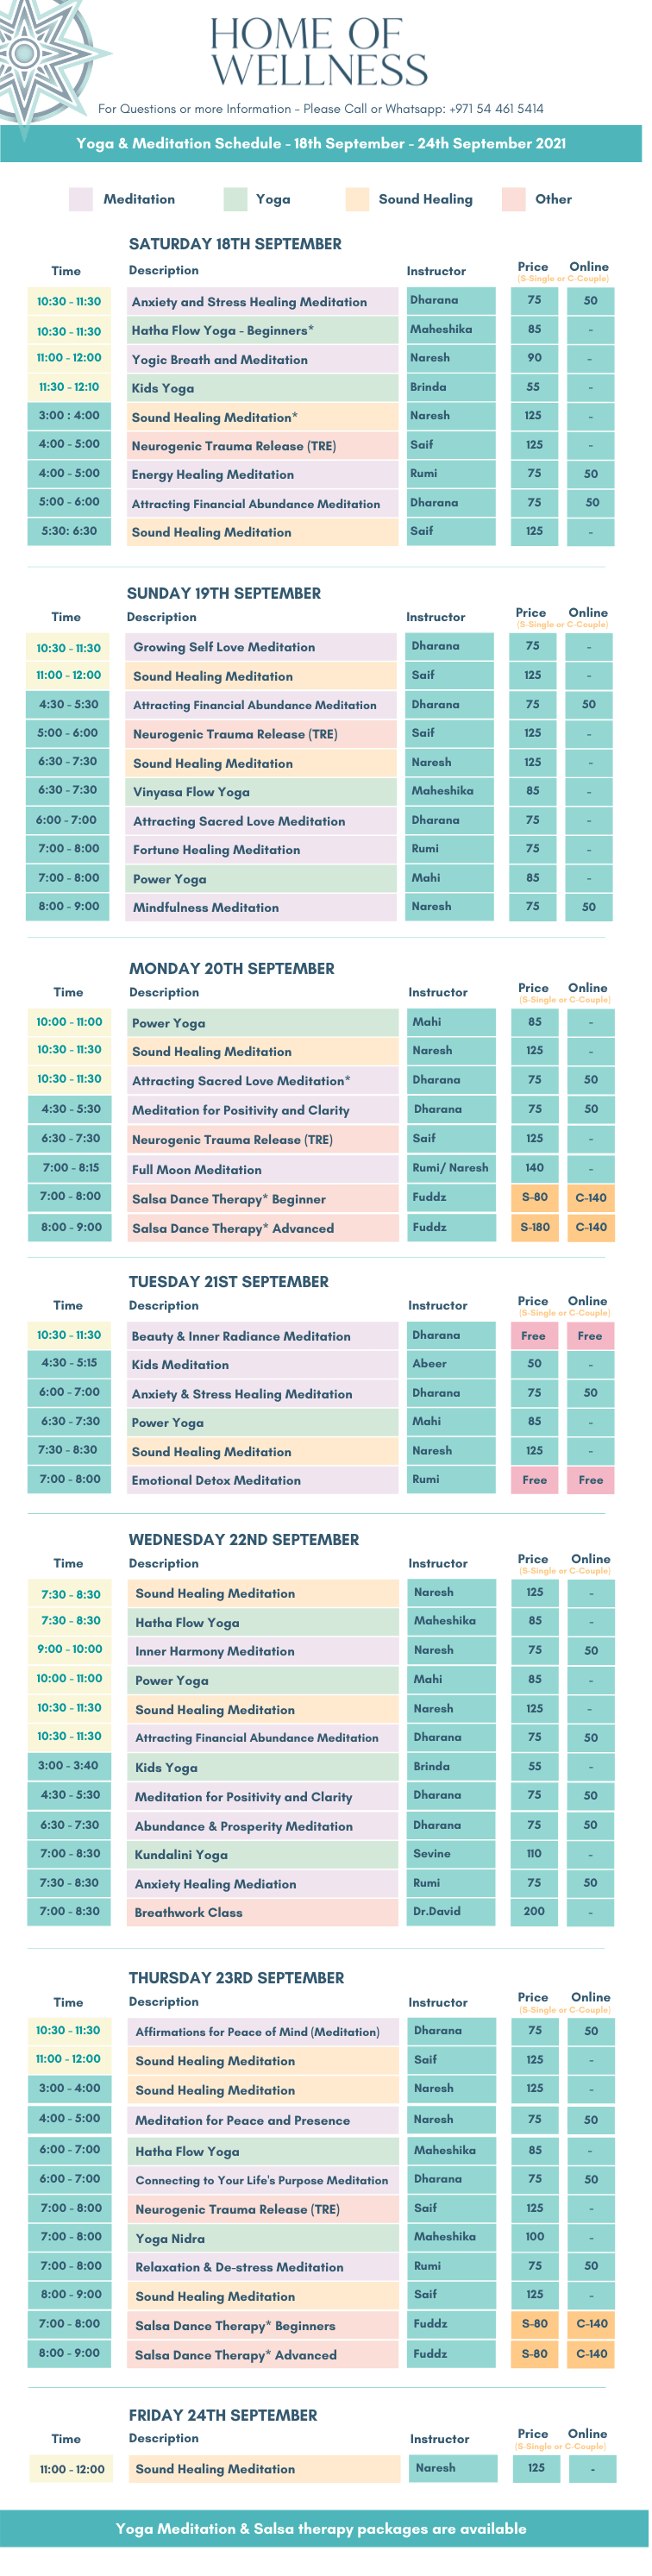 Final schedule 18th - 24th September